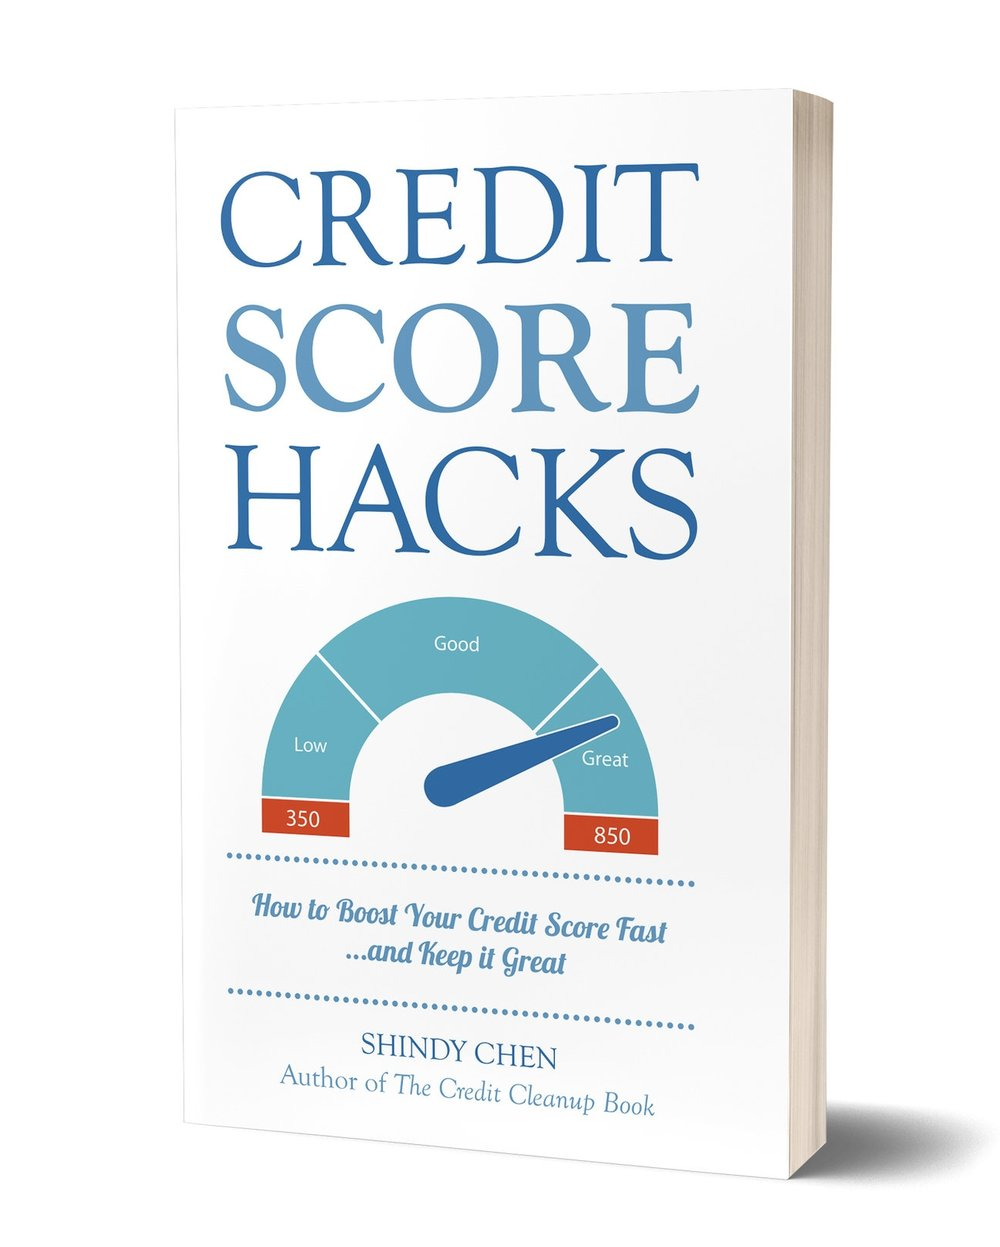 NEW! Credit Score Hacks, out now